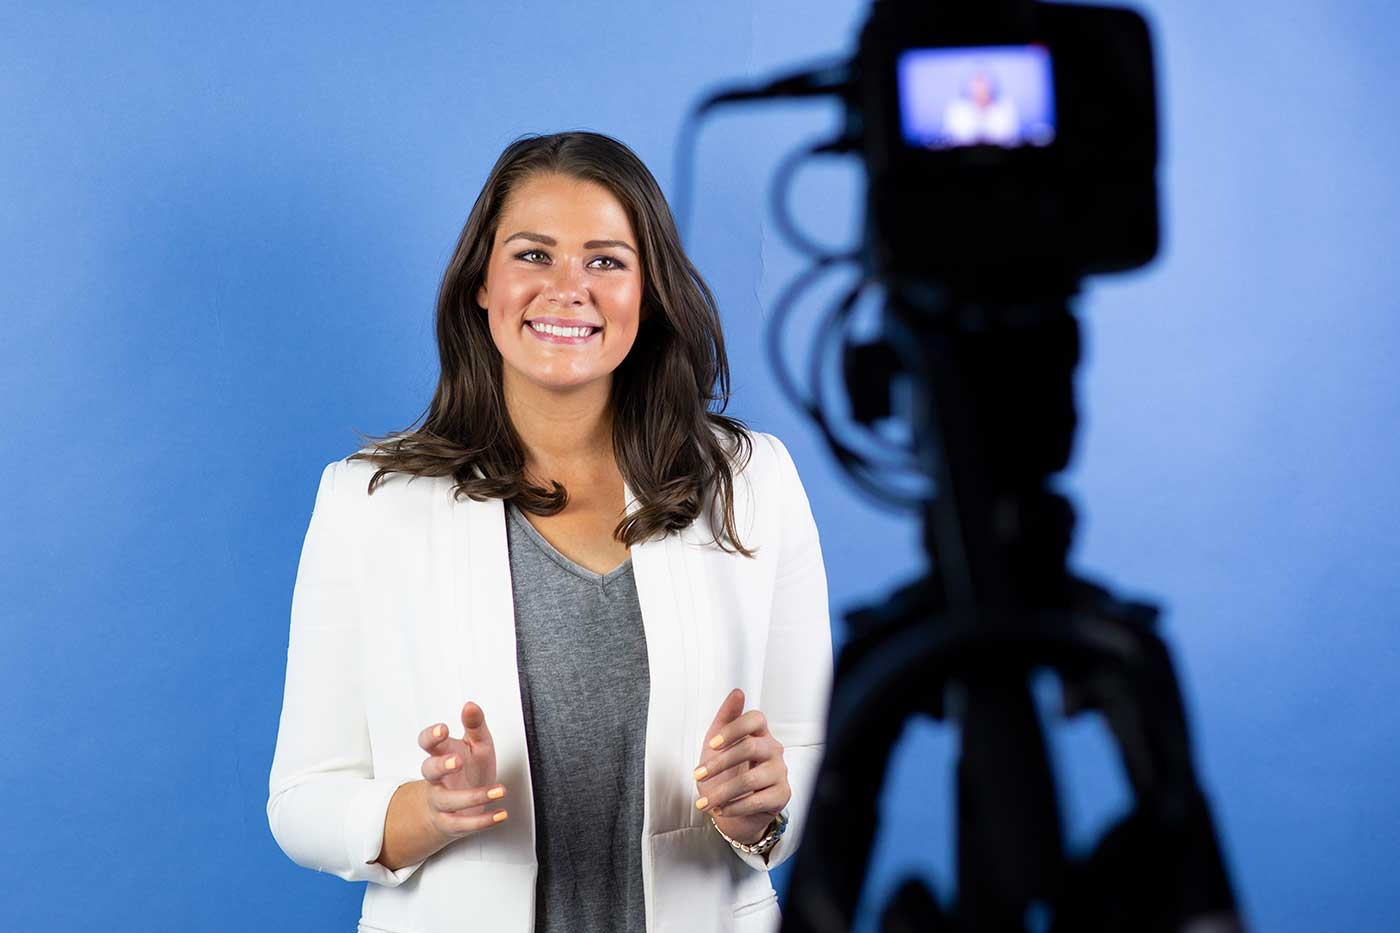 Stephanie Robertson-Renshaw TV Presenting course with Lisa McAskill